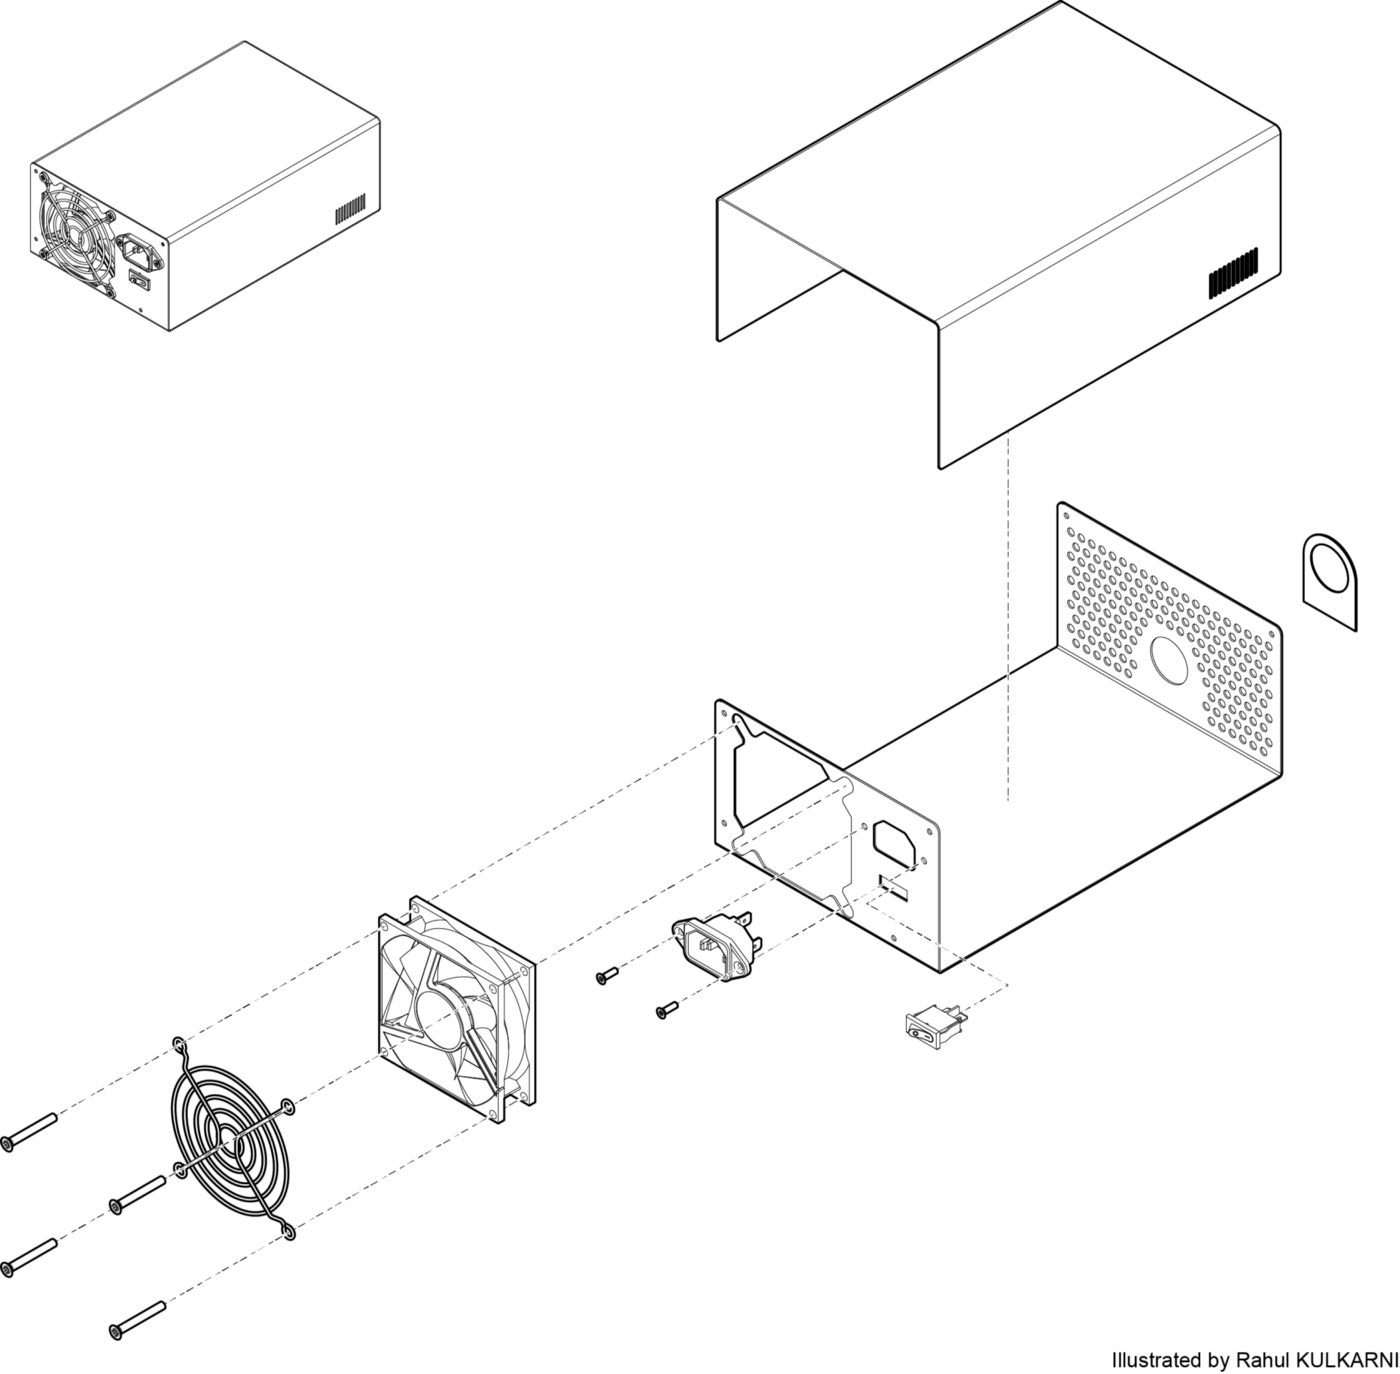 hight resolution of this is a black and white lineart technical illustration of a computer power supply the exploded view in isometric gives the end user a clear idea of the